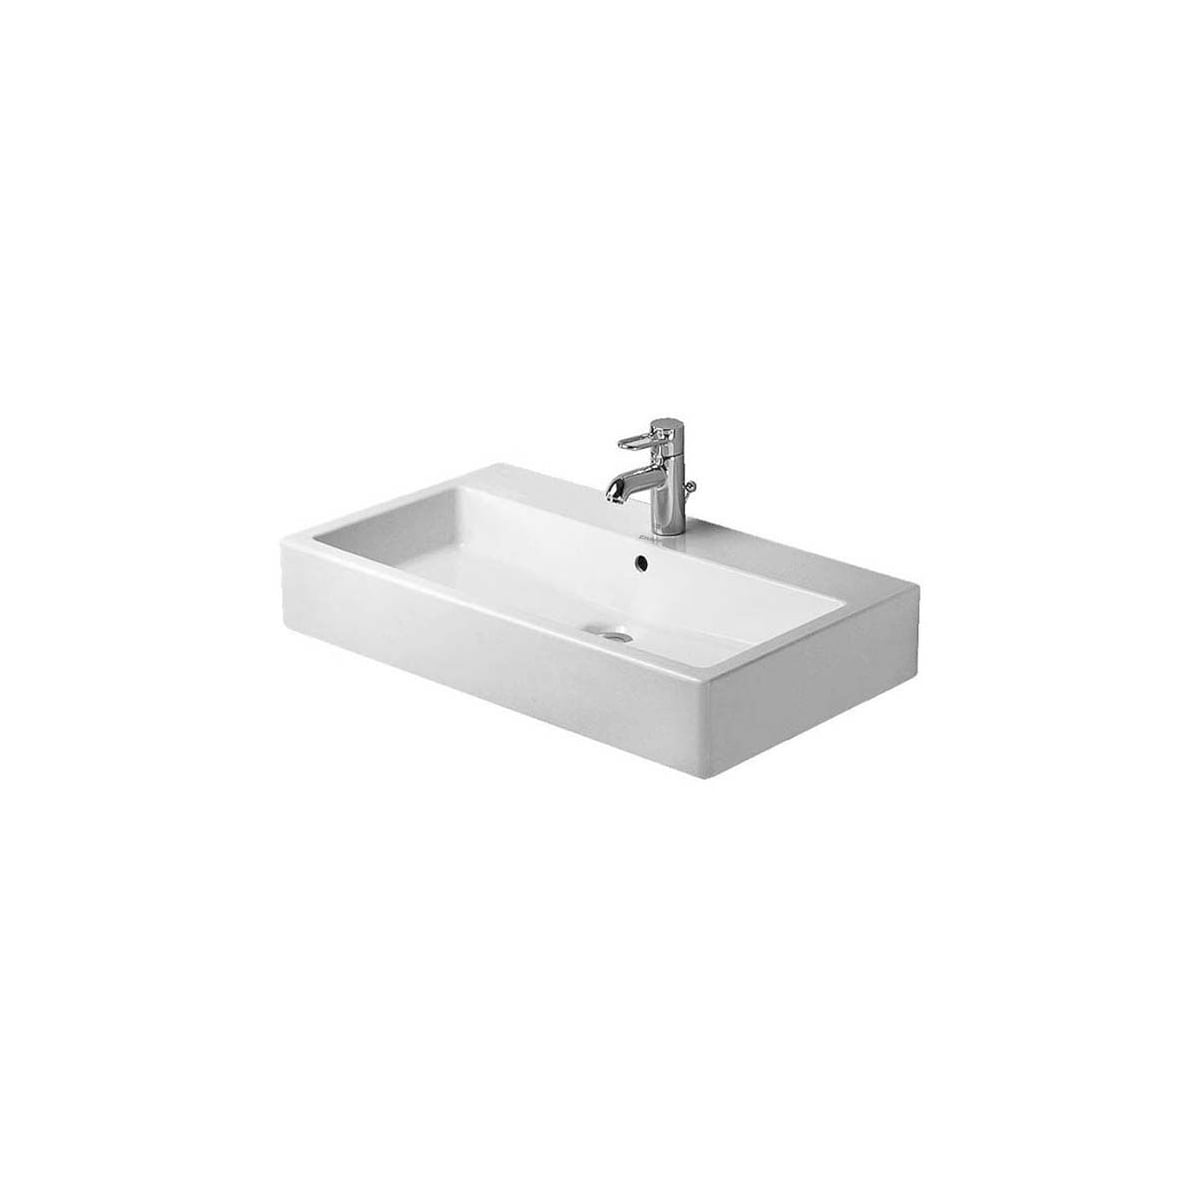 Duravit 0454700000 White Glazed Underside Vero 28 Ceramic Vanity Top With 1 Faucet Hole Faucetdirect Com